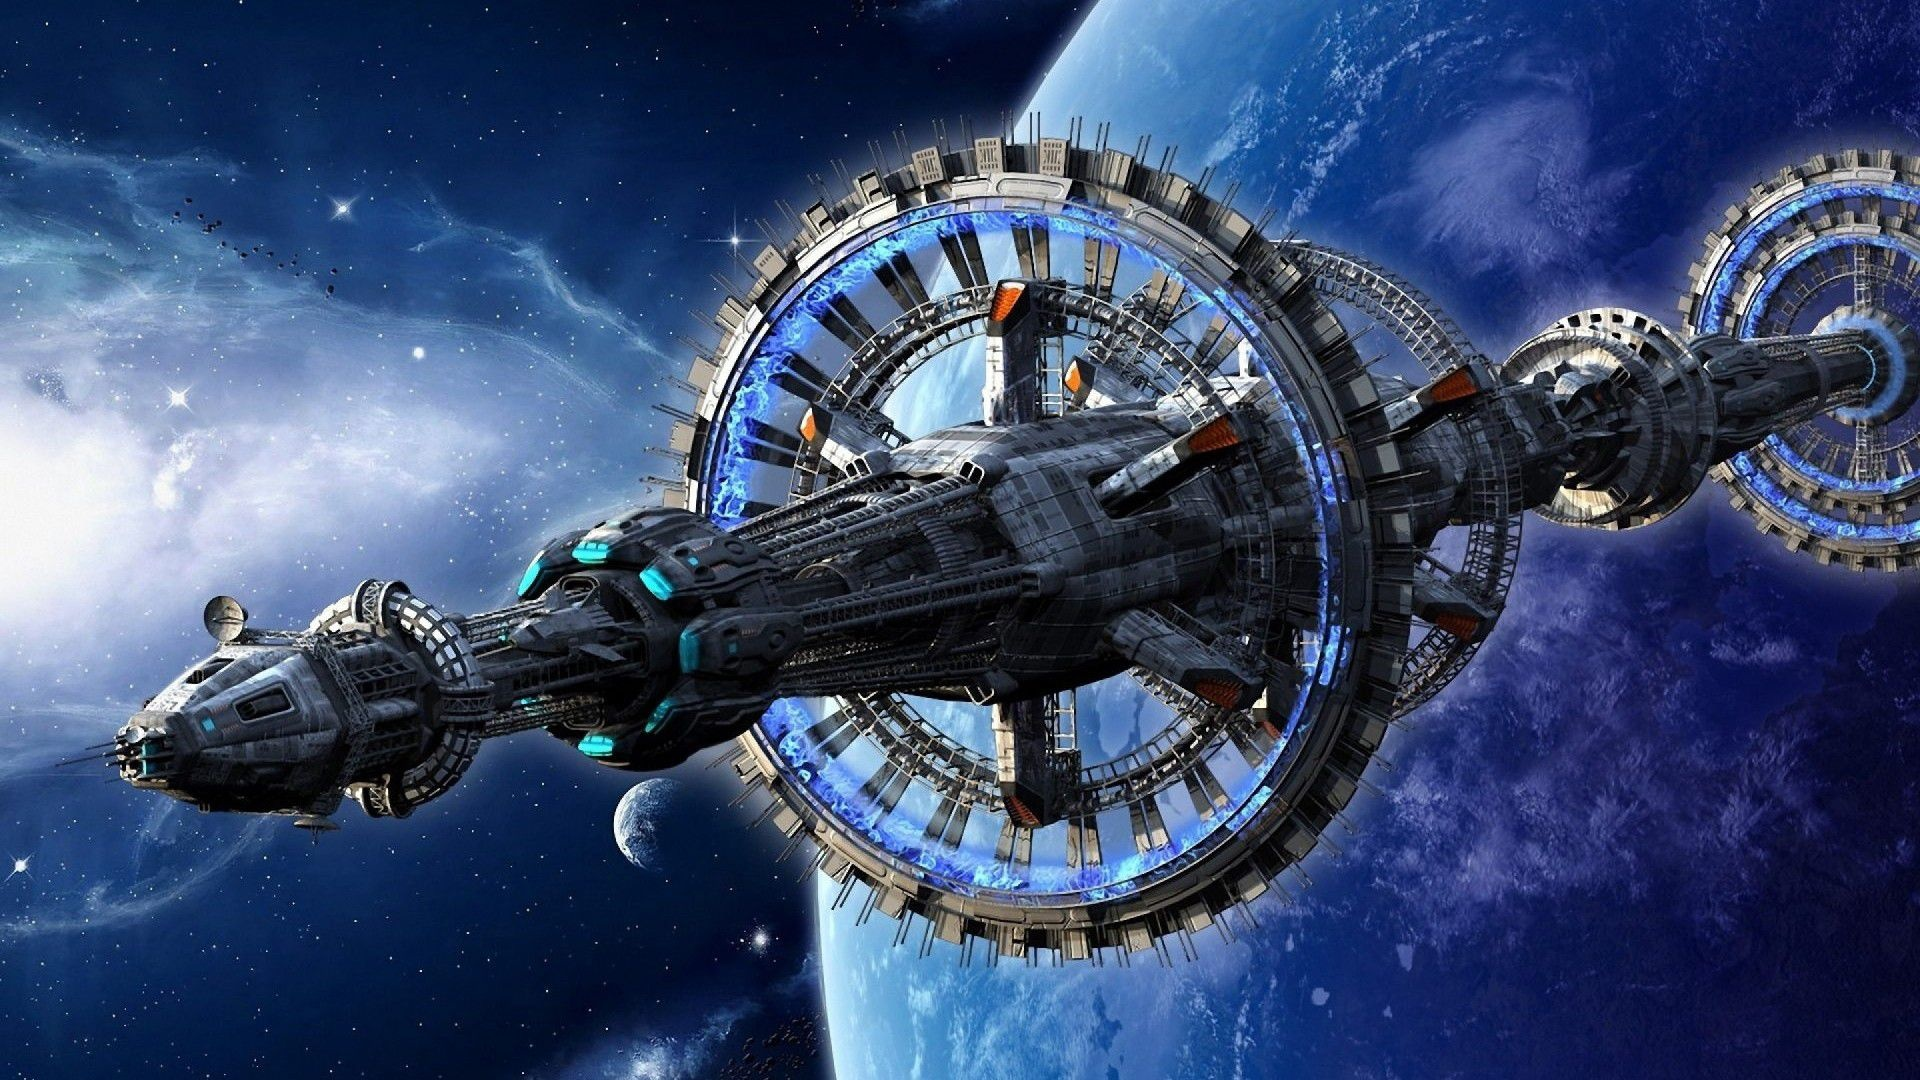 Space Station hd background